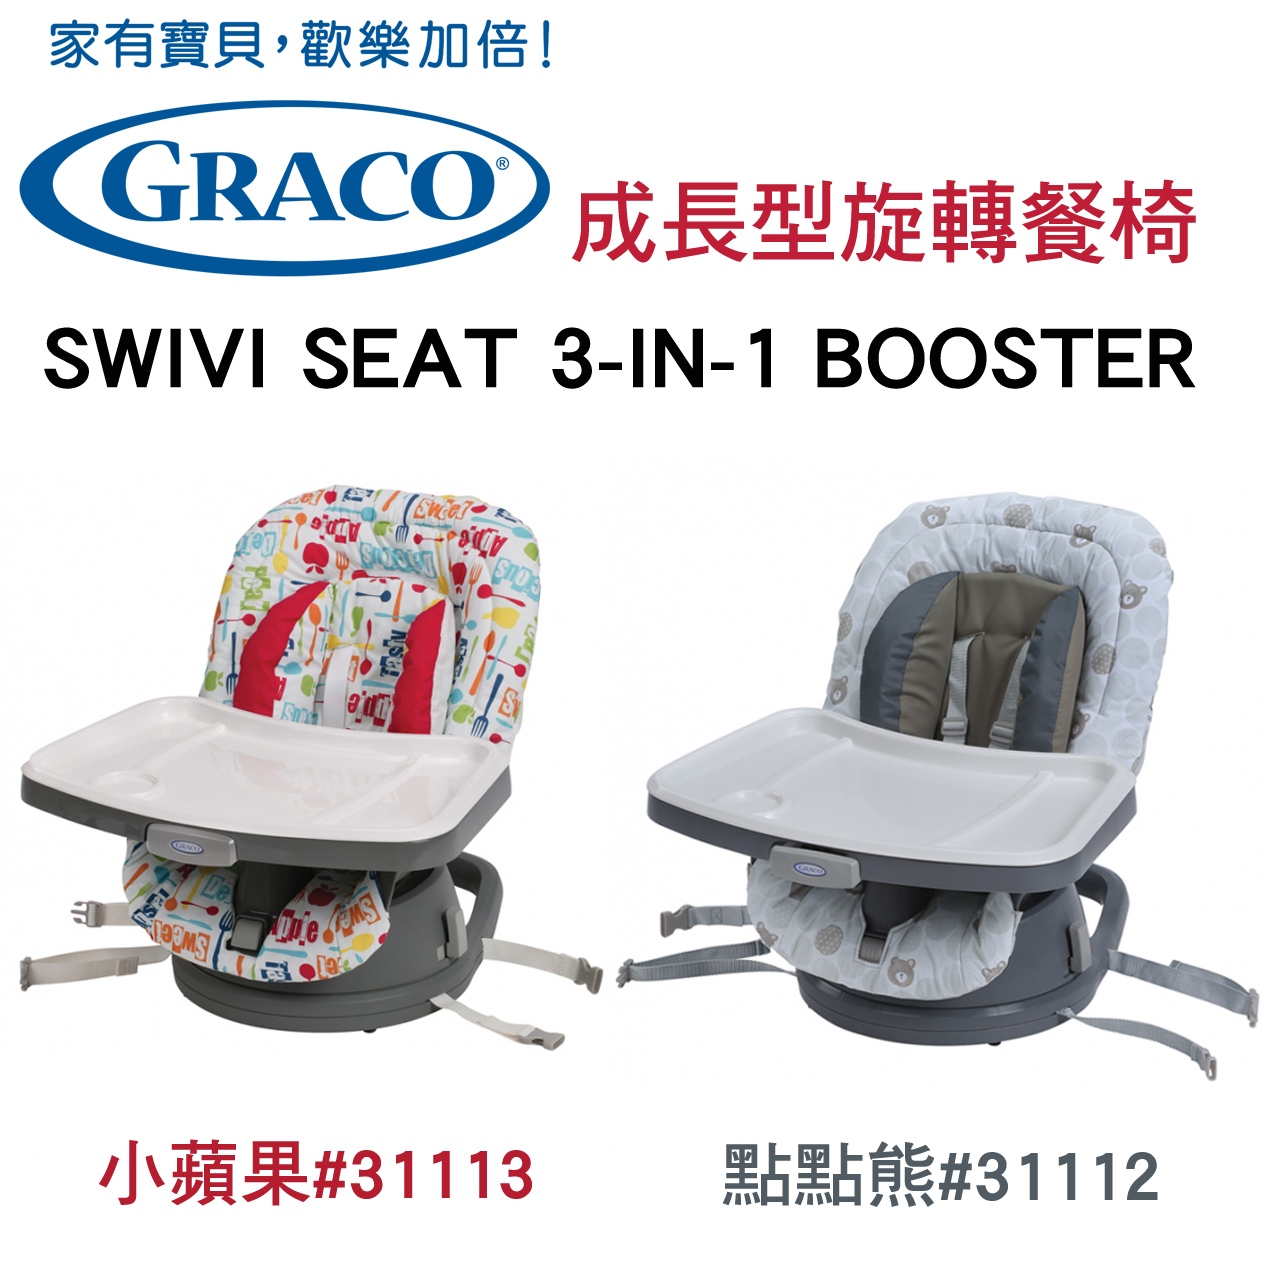 Graco--成長型旋轉餐椅Swivi Seat 3-in-1 Booster